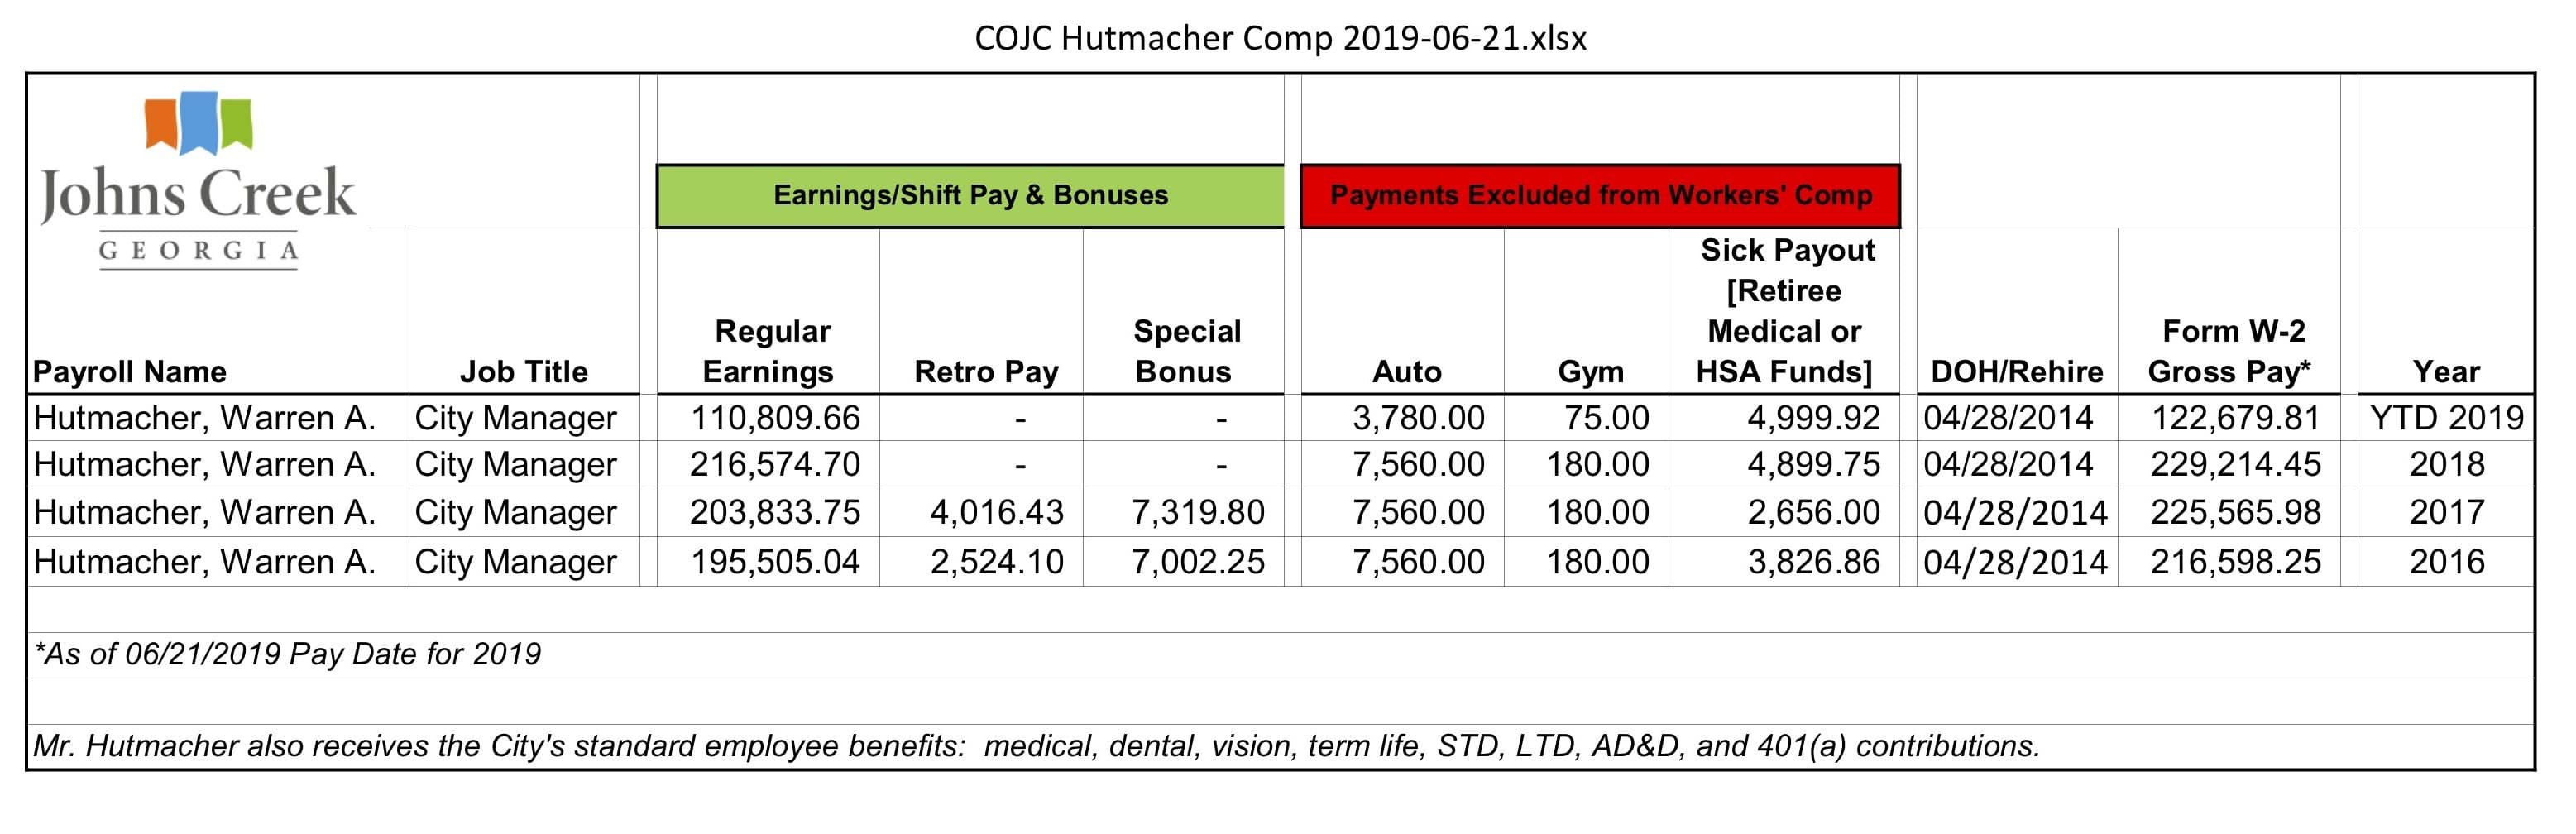 City of Johns Creek Hutmacher Compensation 2019-06-21